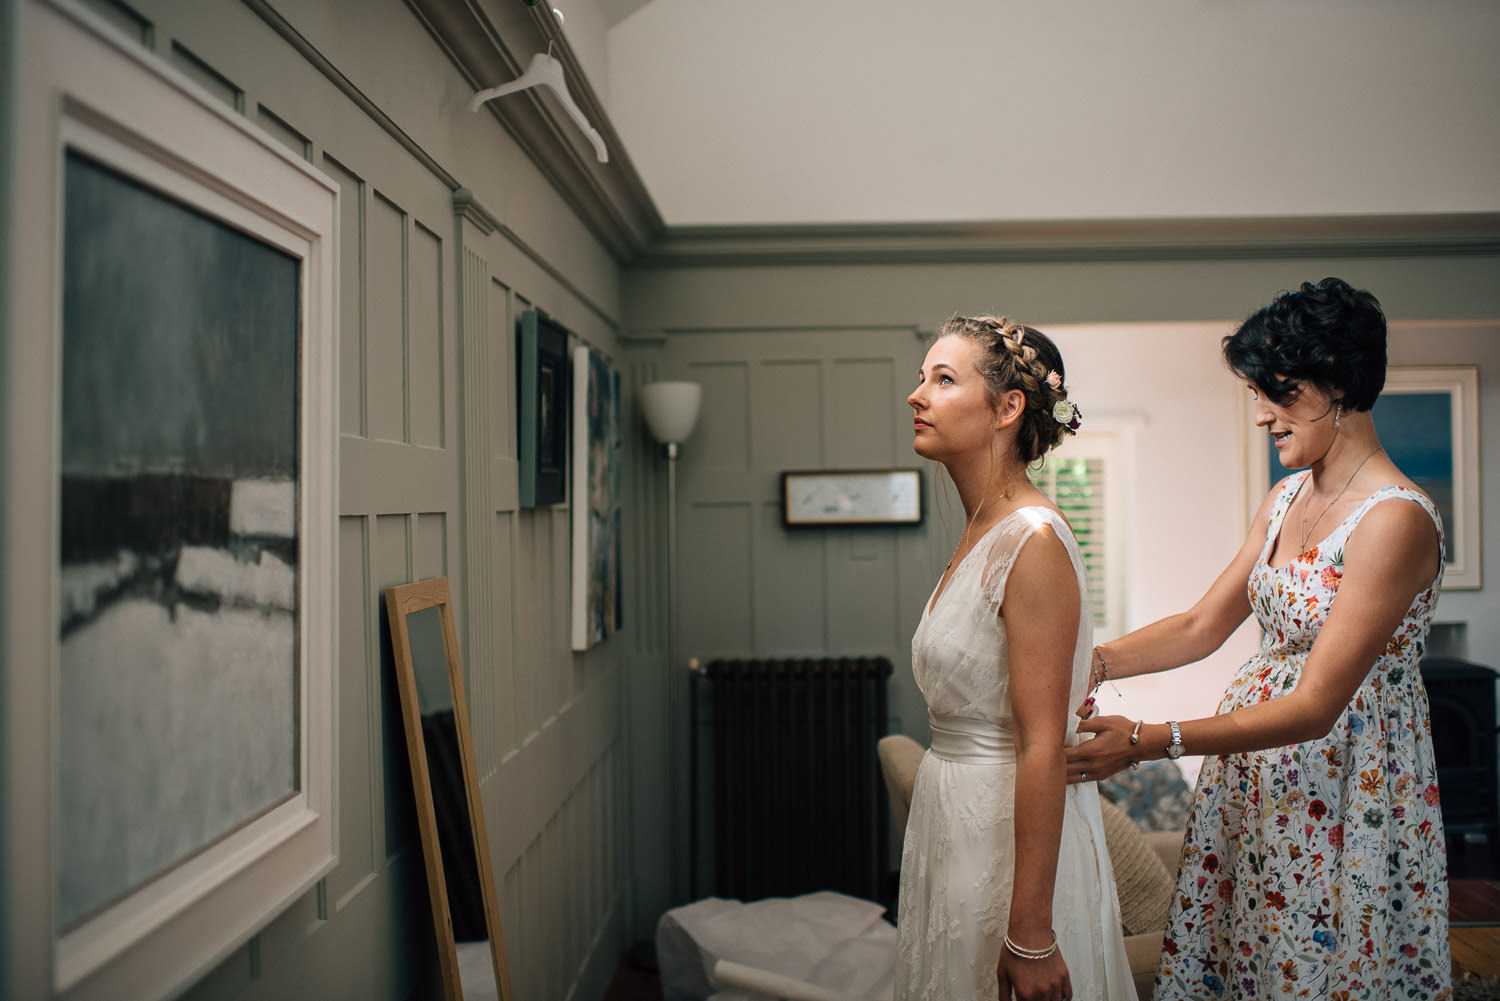 Charlie Brear dress  in surrey festival wedding by creative and alternative wedding photographer the shannons photography